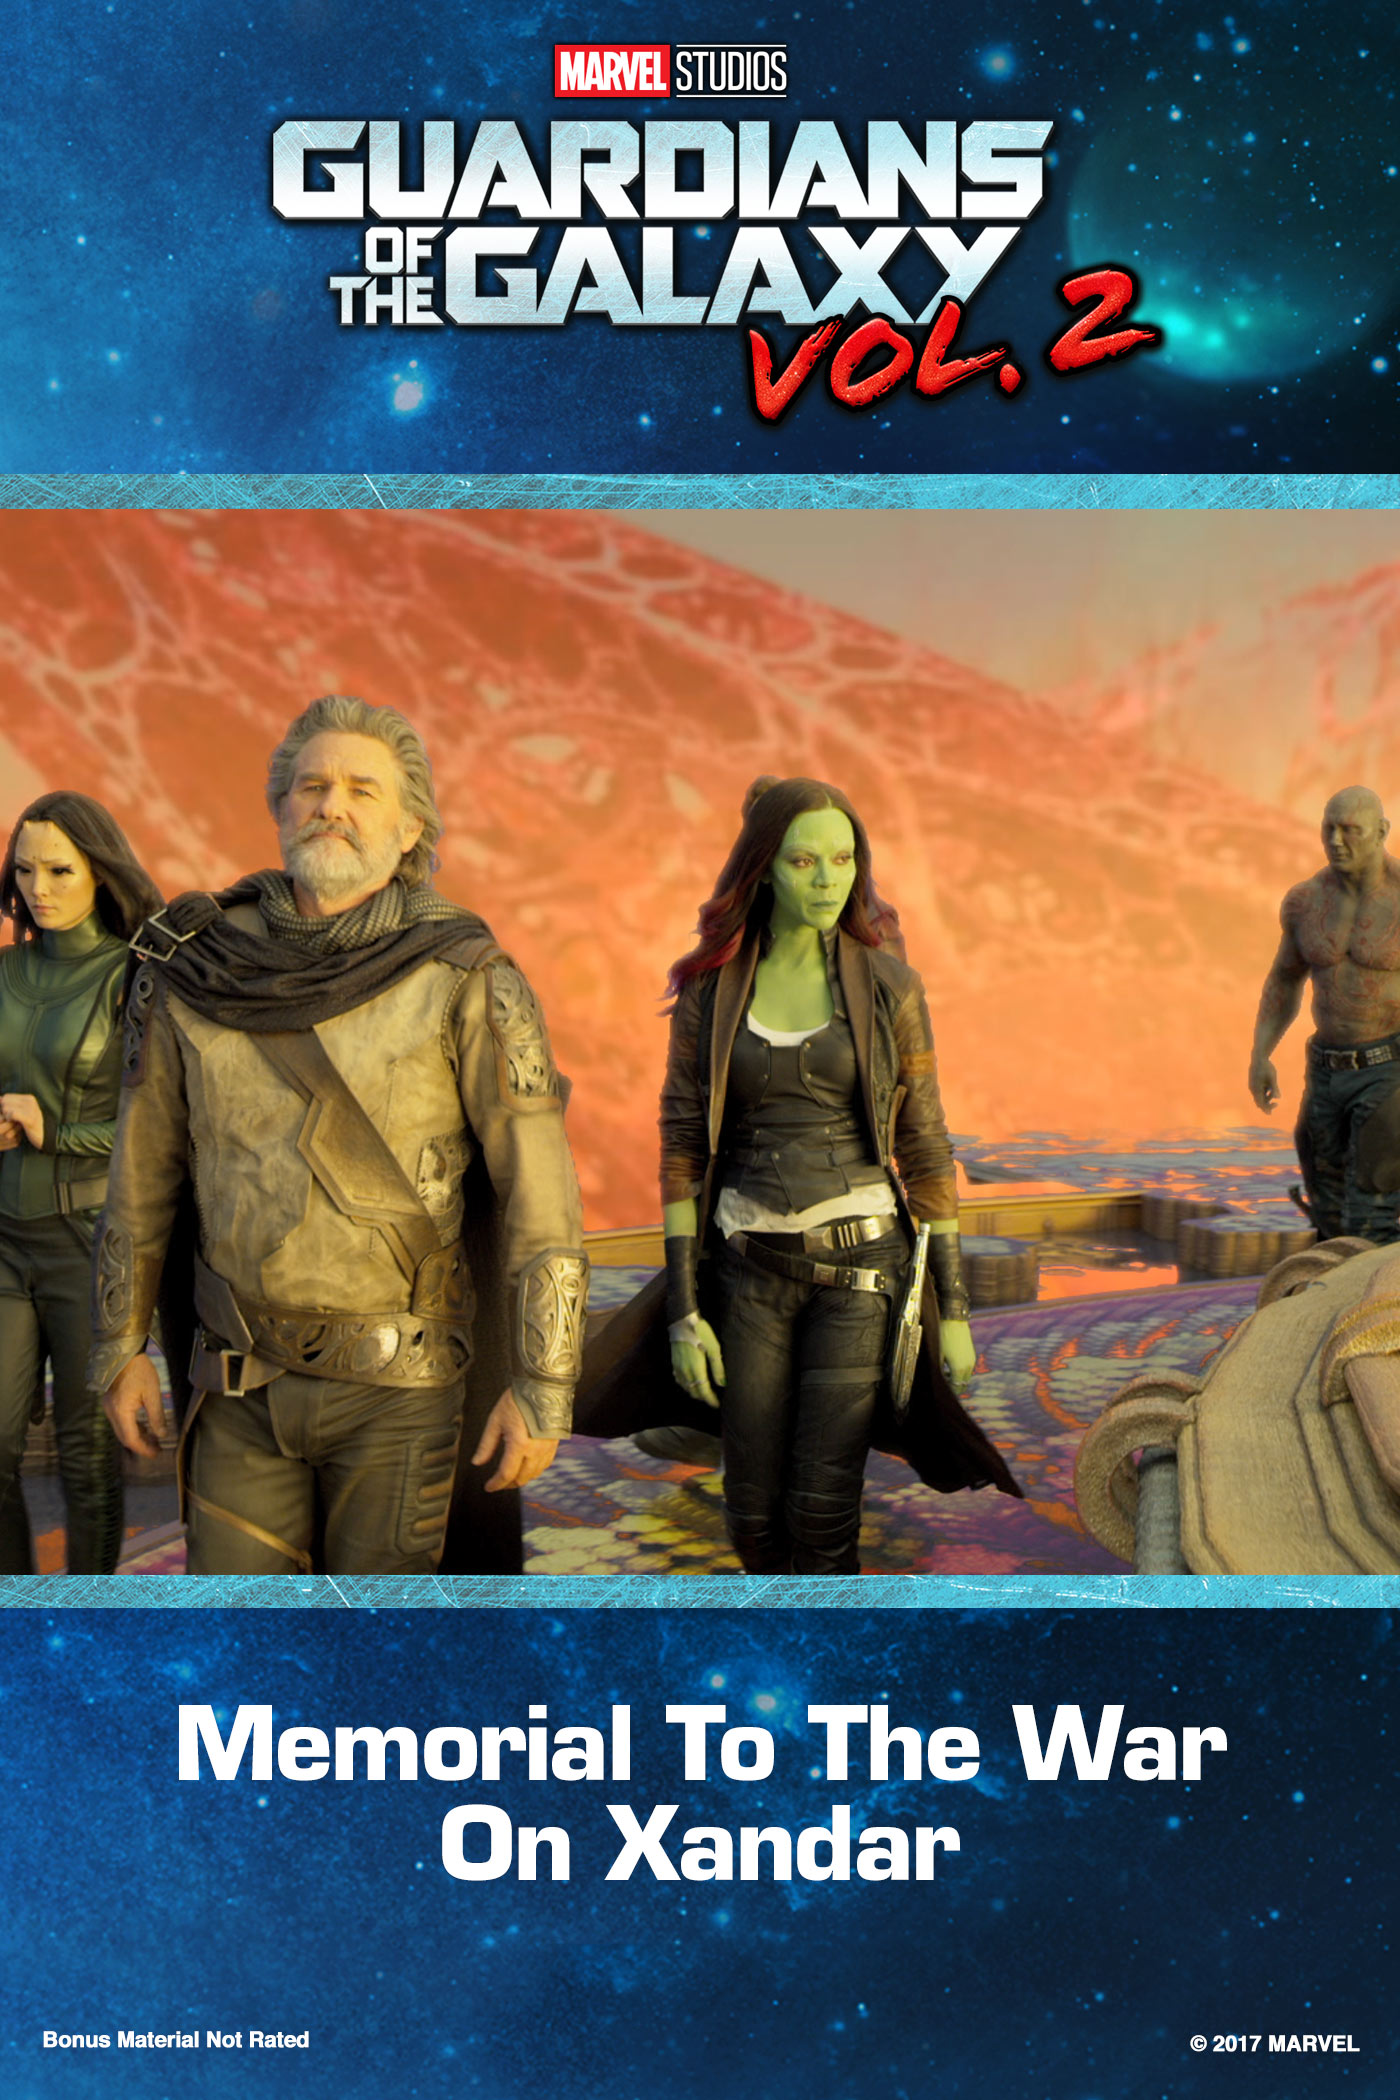 Memorial To The War On Xandar